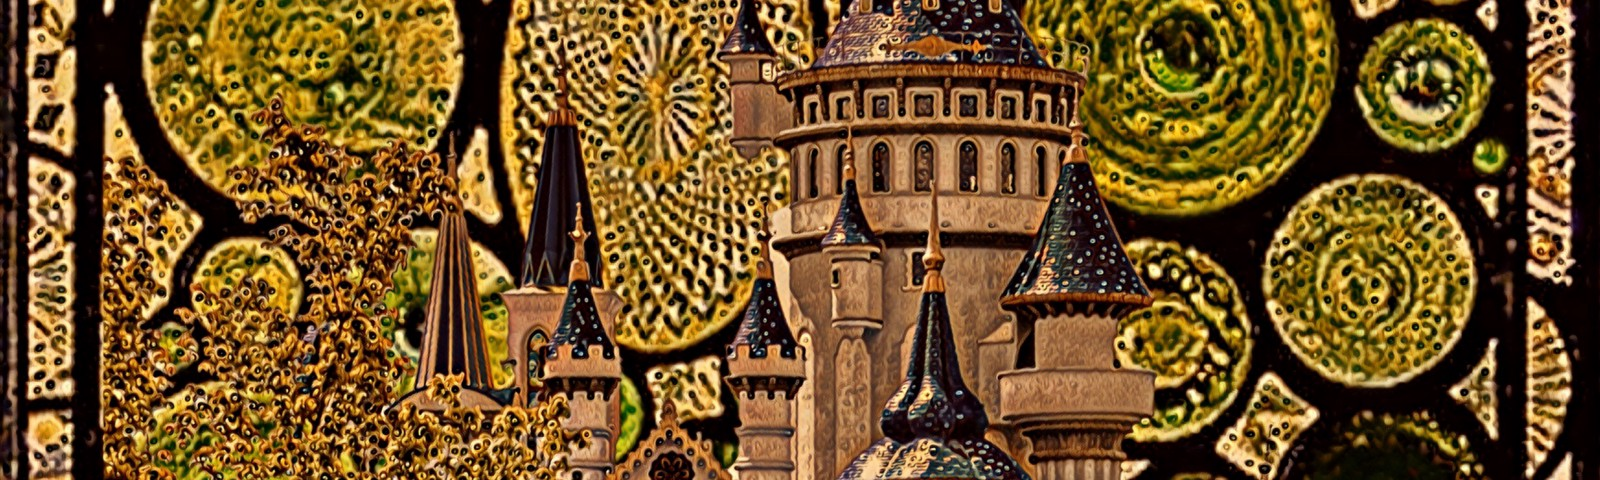 Golden brown and green fairy tale castle